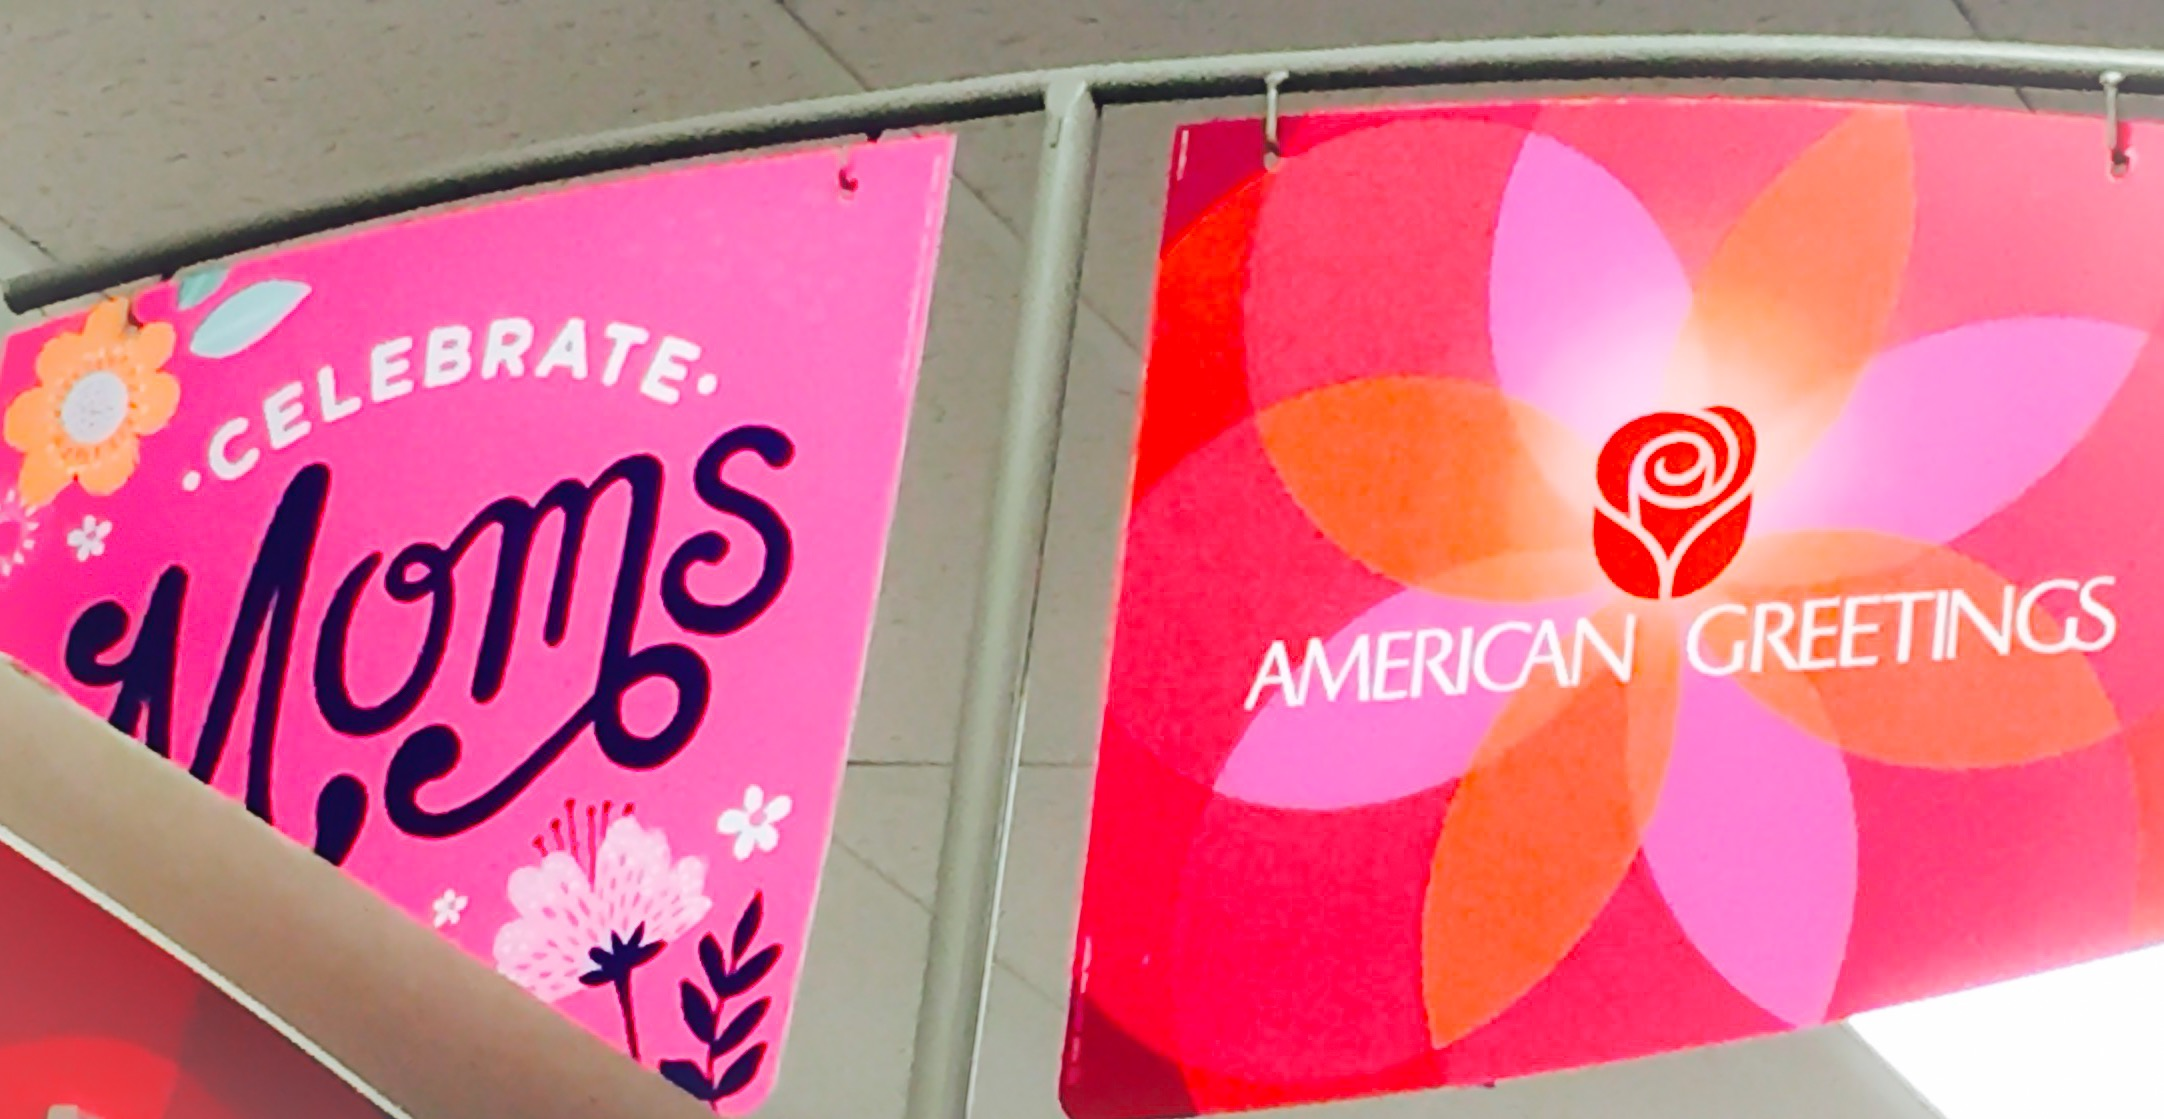 American Greetings & AAFES